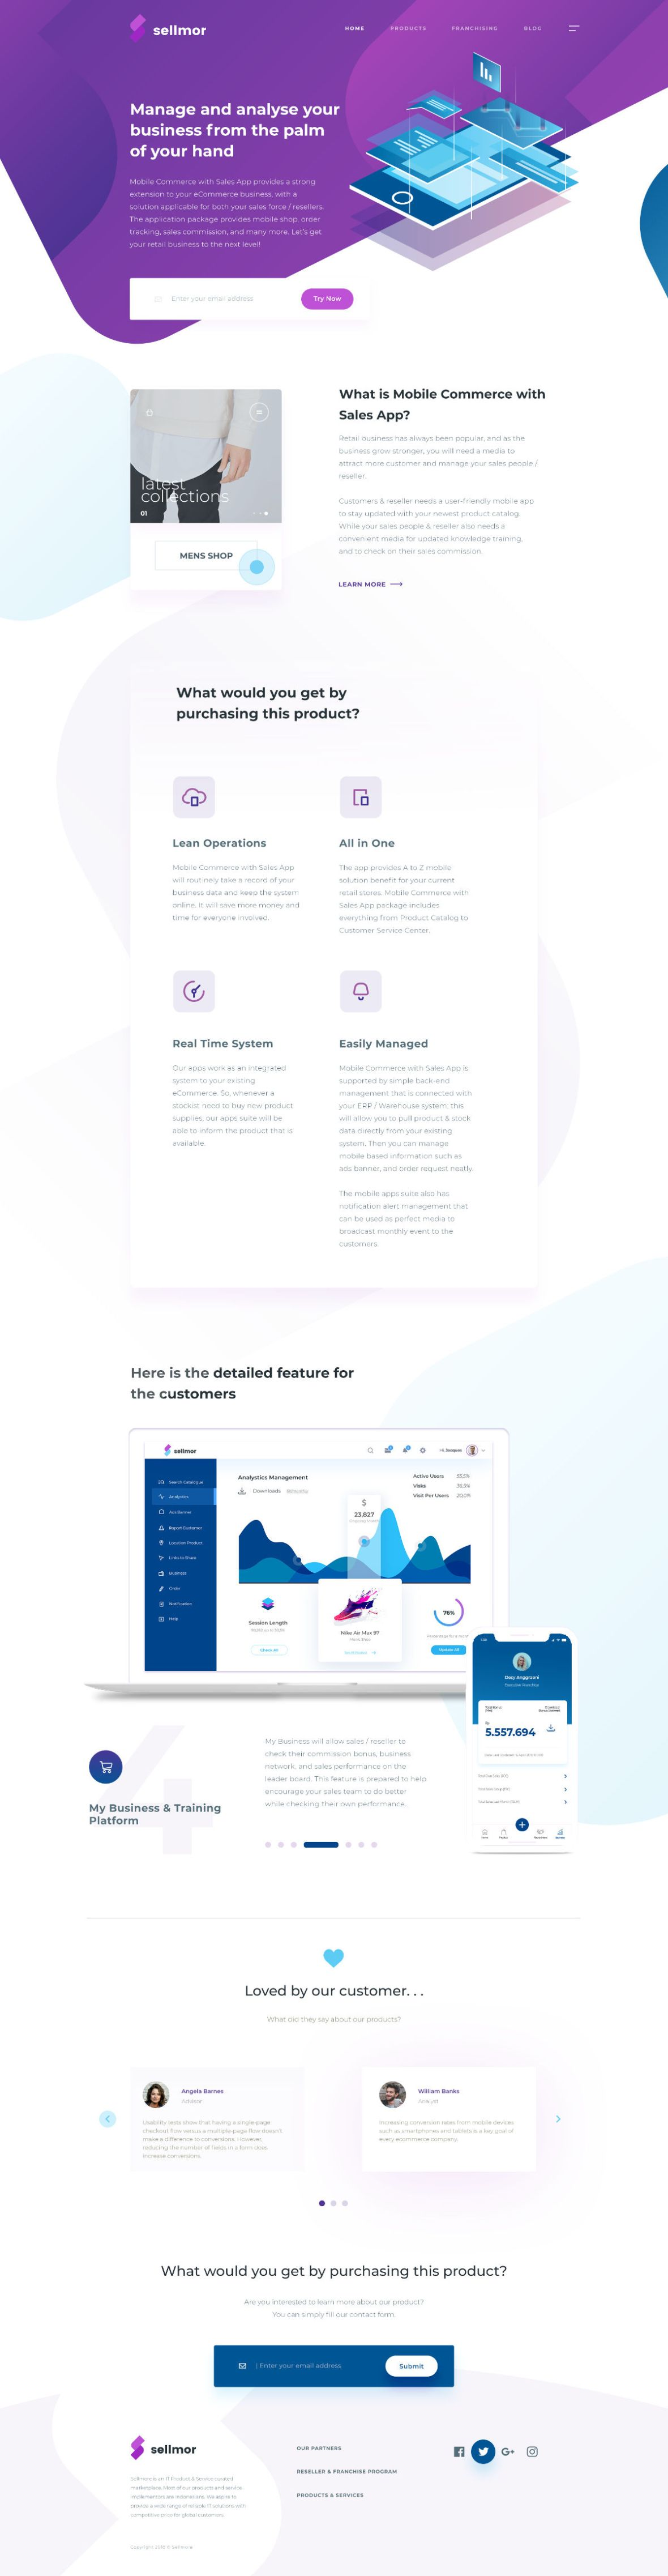 Free Sellmor Landing Page PSD by Aryo PamungkasFree Sellmor Landing Page PSD